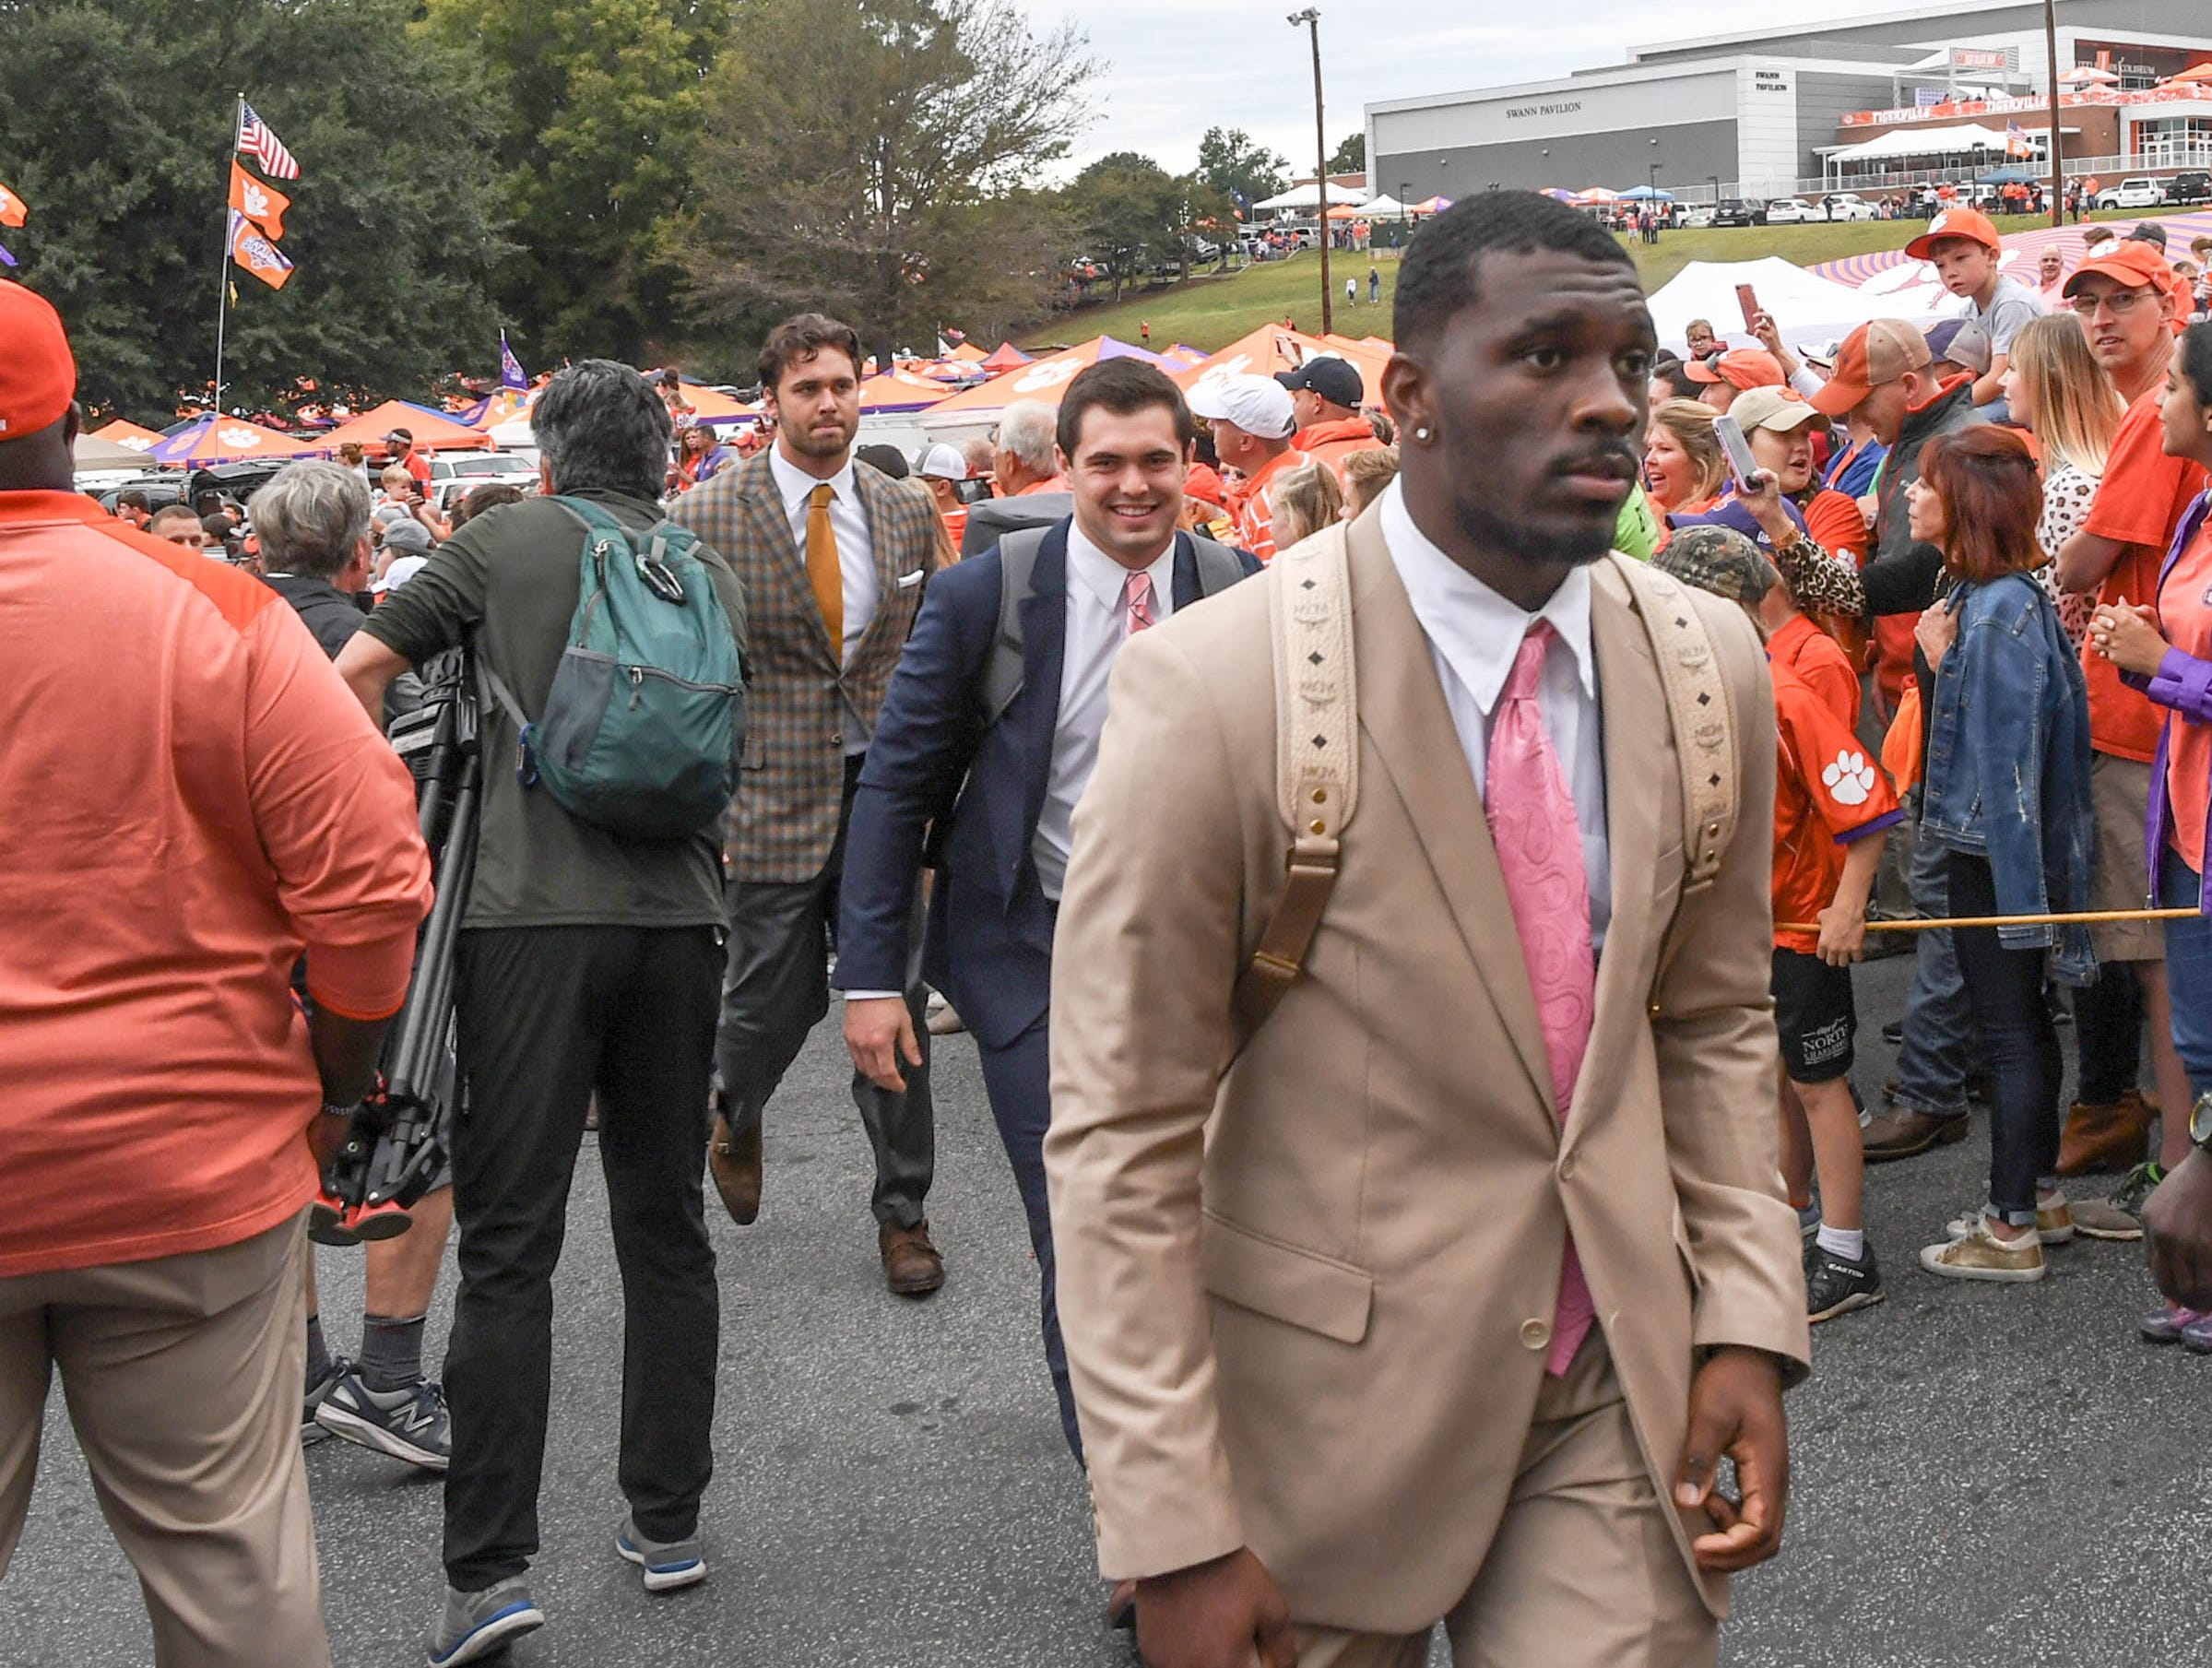 Clemson running back Tavien Feaster (28) walks by fans during Tiger Walk before the game in Memorial Stadium on Saturday, October 20, 2018.